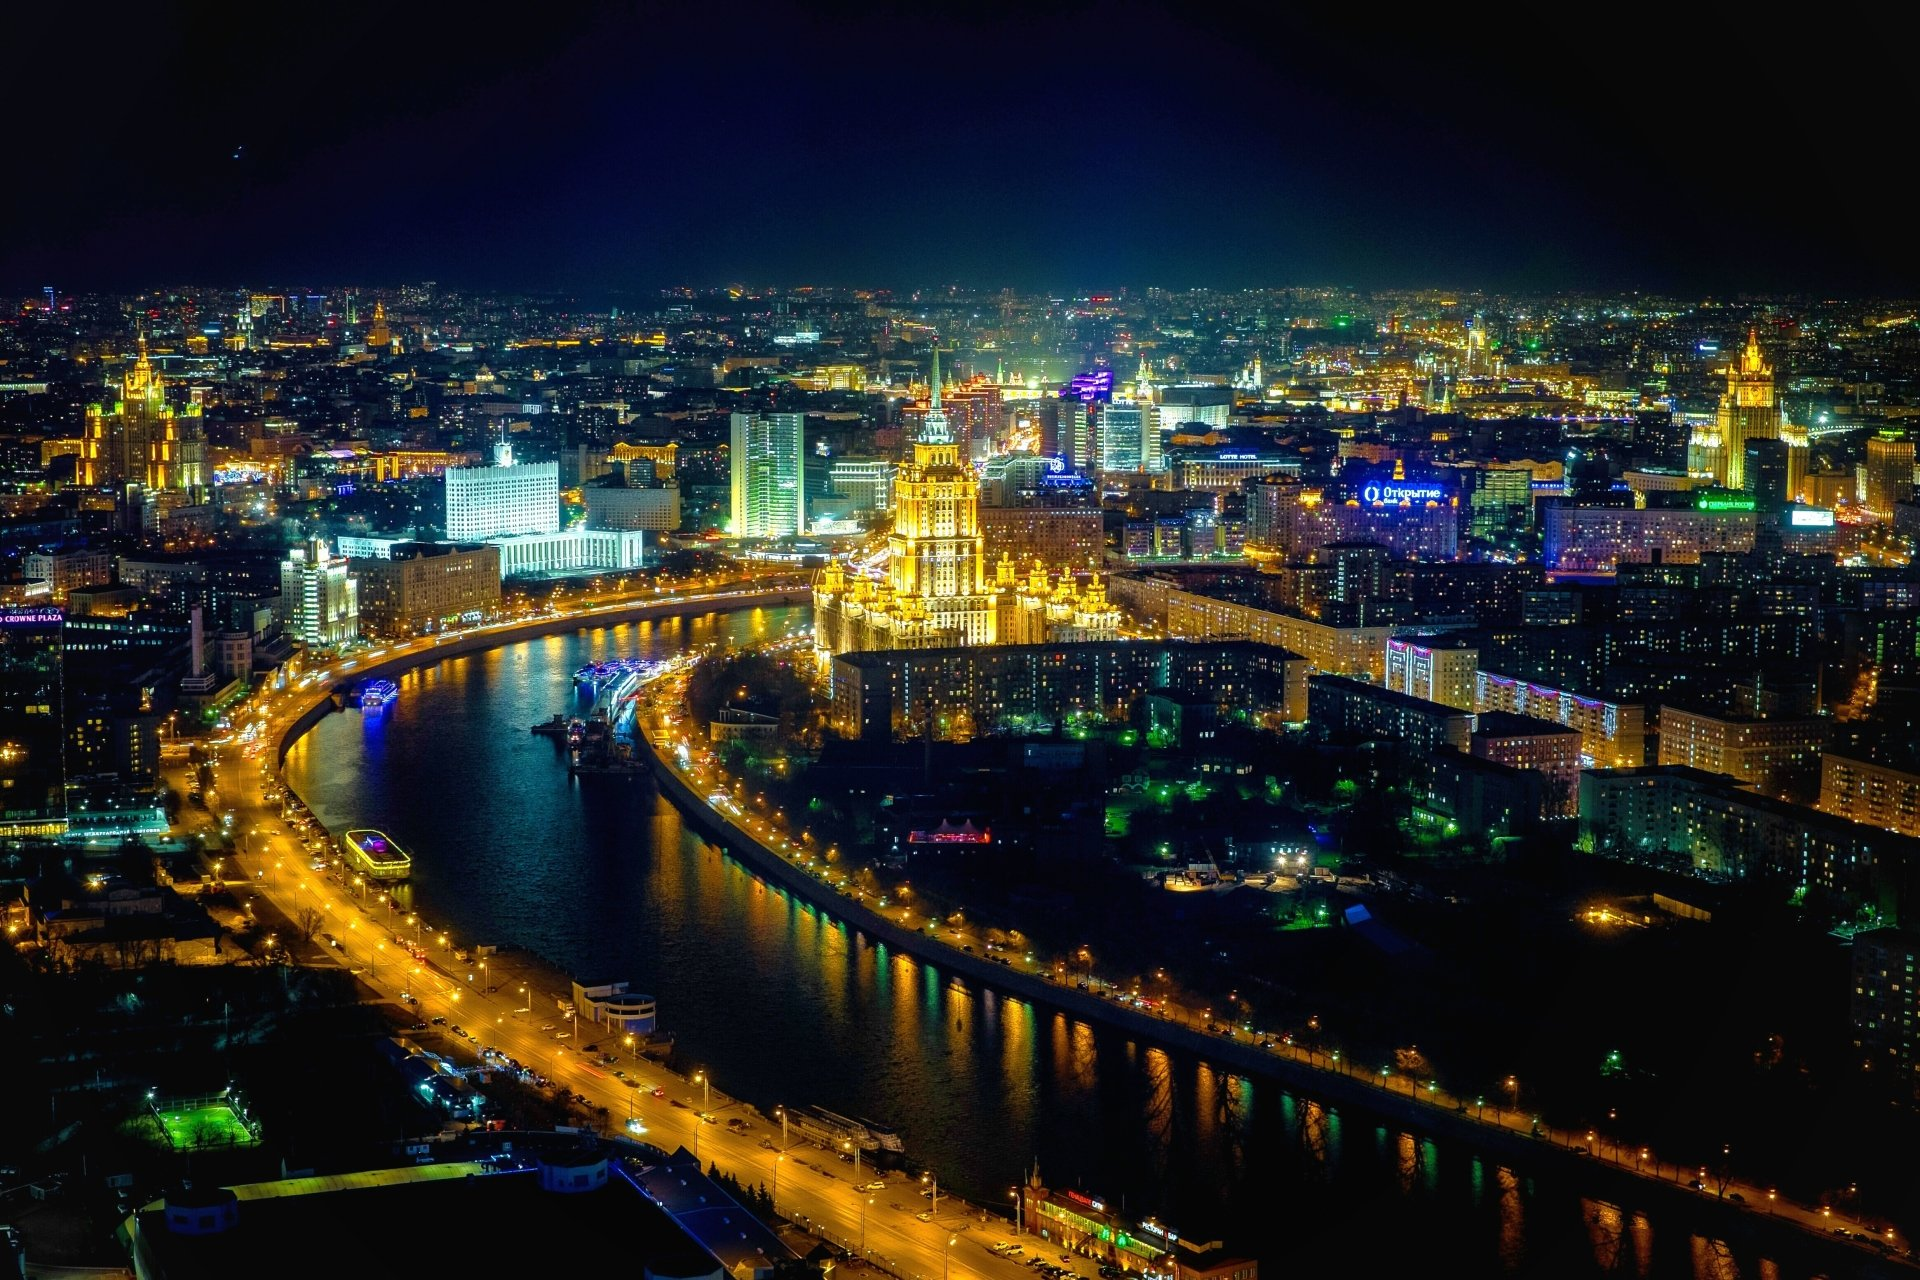 Man Made - Moscow  Aerial River Night Light Cityscape City Horizon Russia Wallpaper